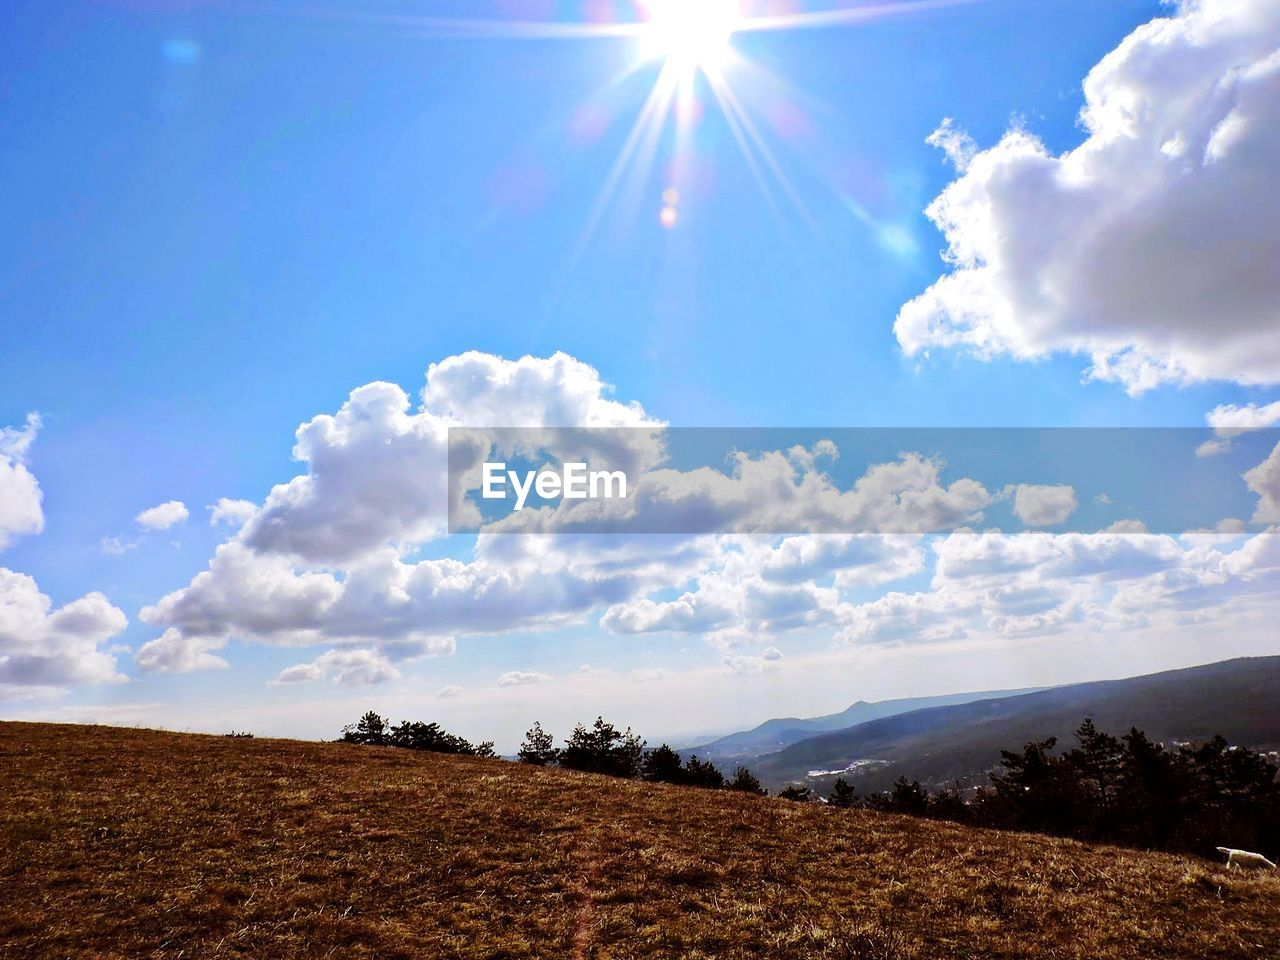 sky, cloud - sky, beauty in nature, tranquility, sunlight, tranquil scene, scenics - nature, landscape, environment, nature, day, sun, sunbeam, land, lens flare, no people, sunny, non-urban scene, field, plant, outdoors, bright, brightly lit, solar flare